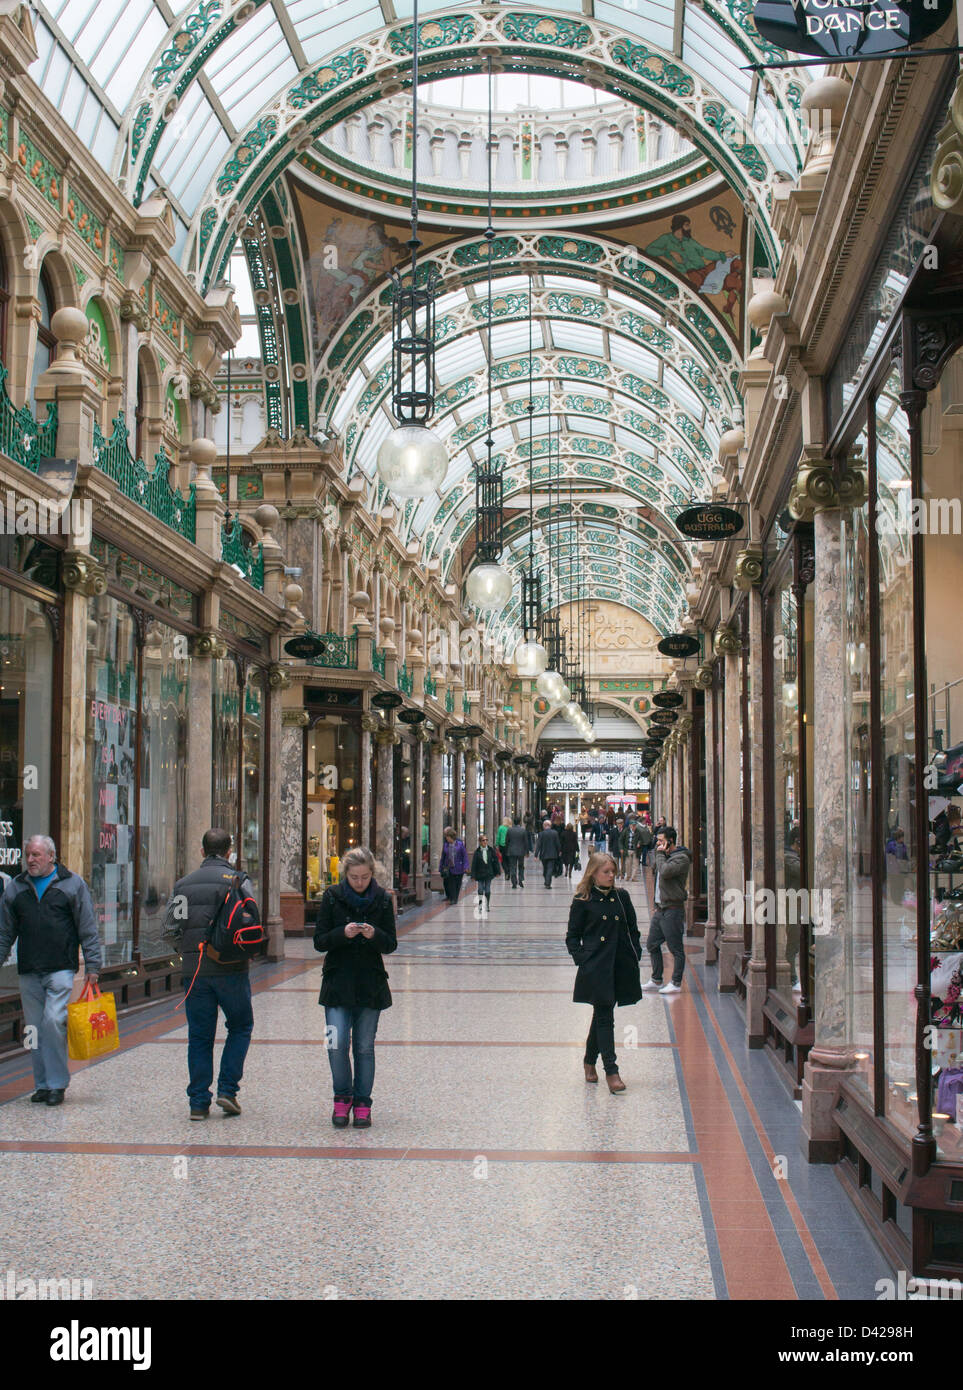 Shoppers walking through County Arcade Leeds, England UK - Stock Image